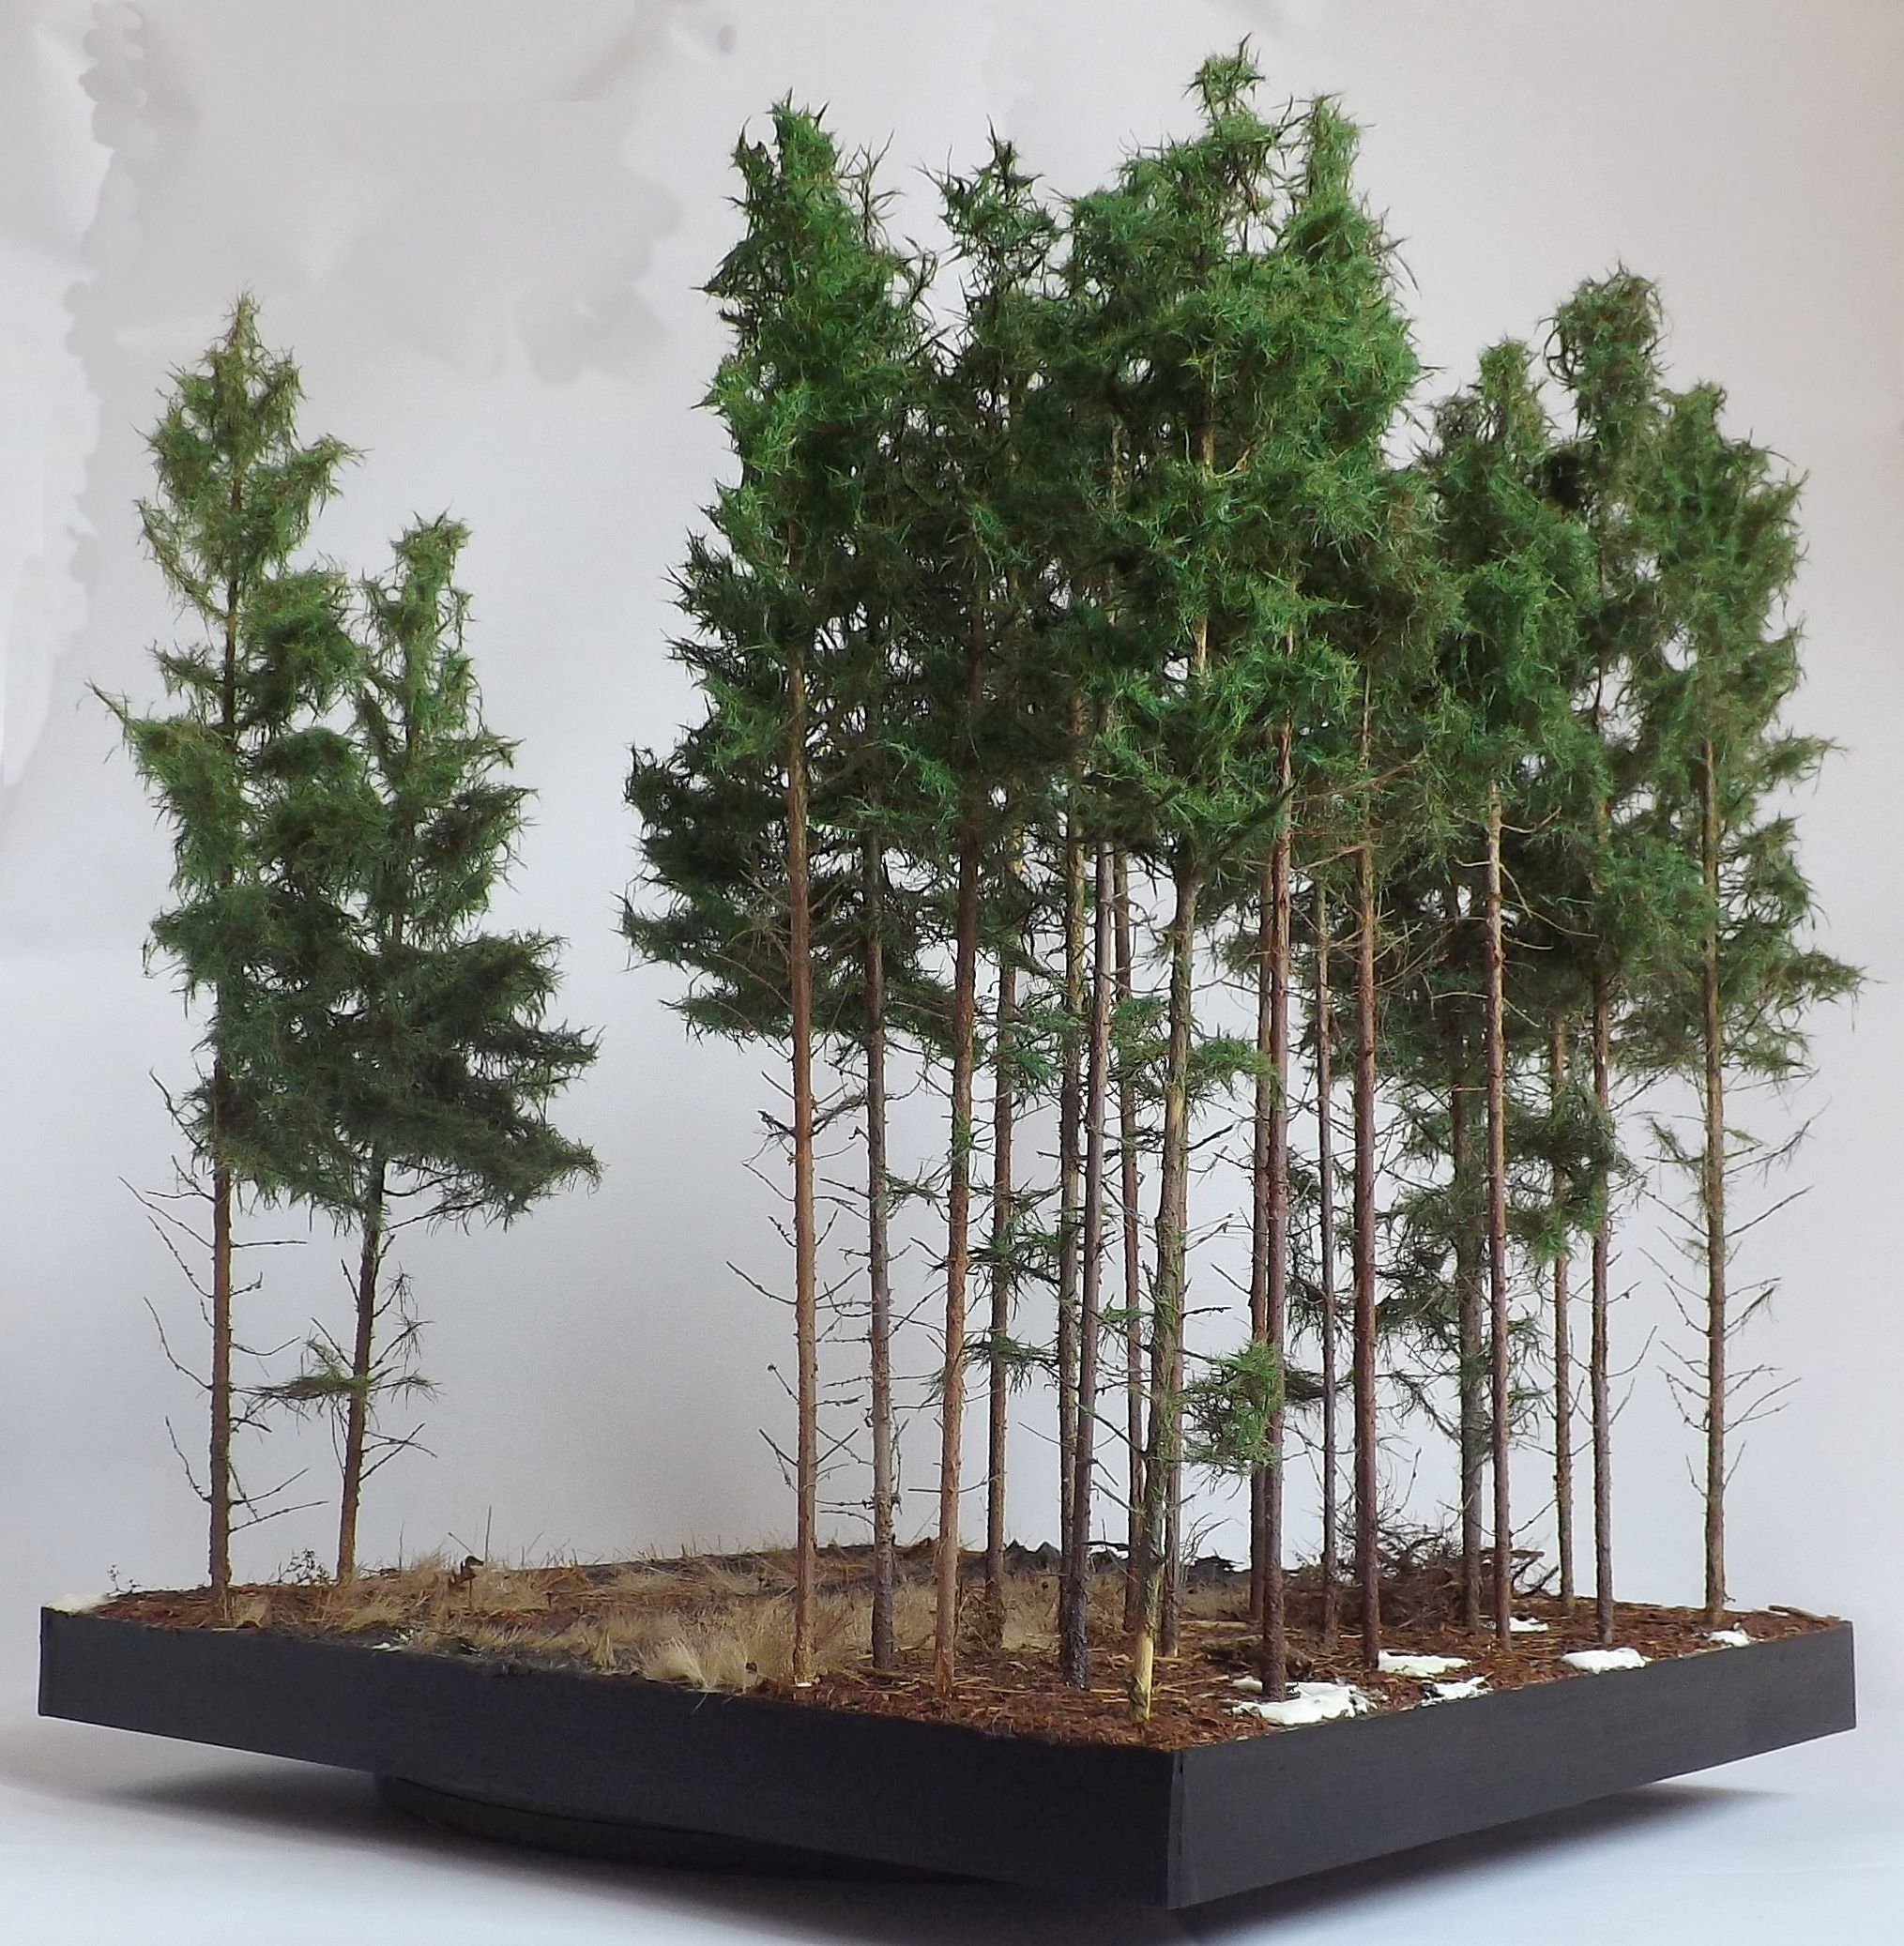 Pine Woods 1 35 Scale Diorama Base By Terence Young Concept Art Inspiration Landscape Design Diorama